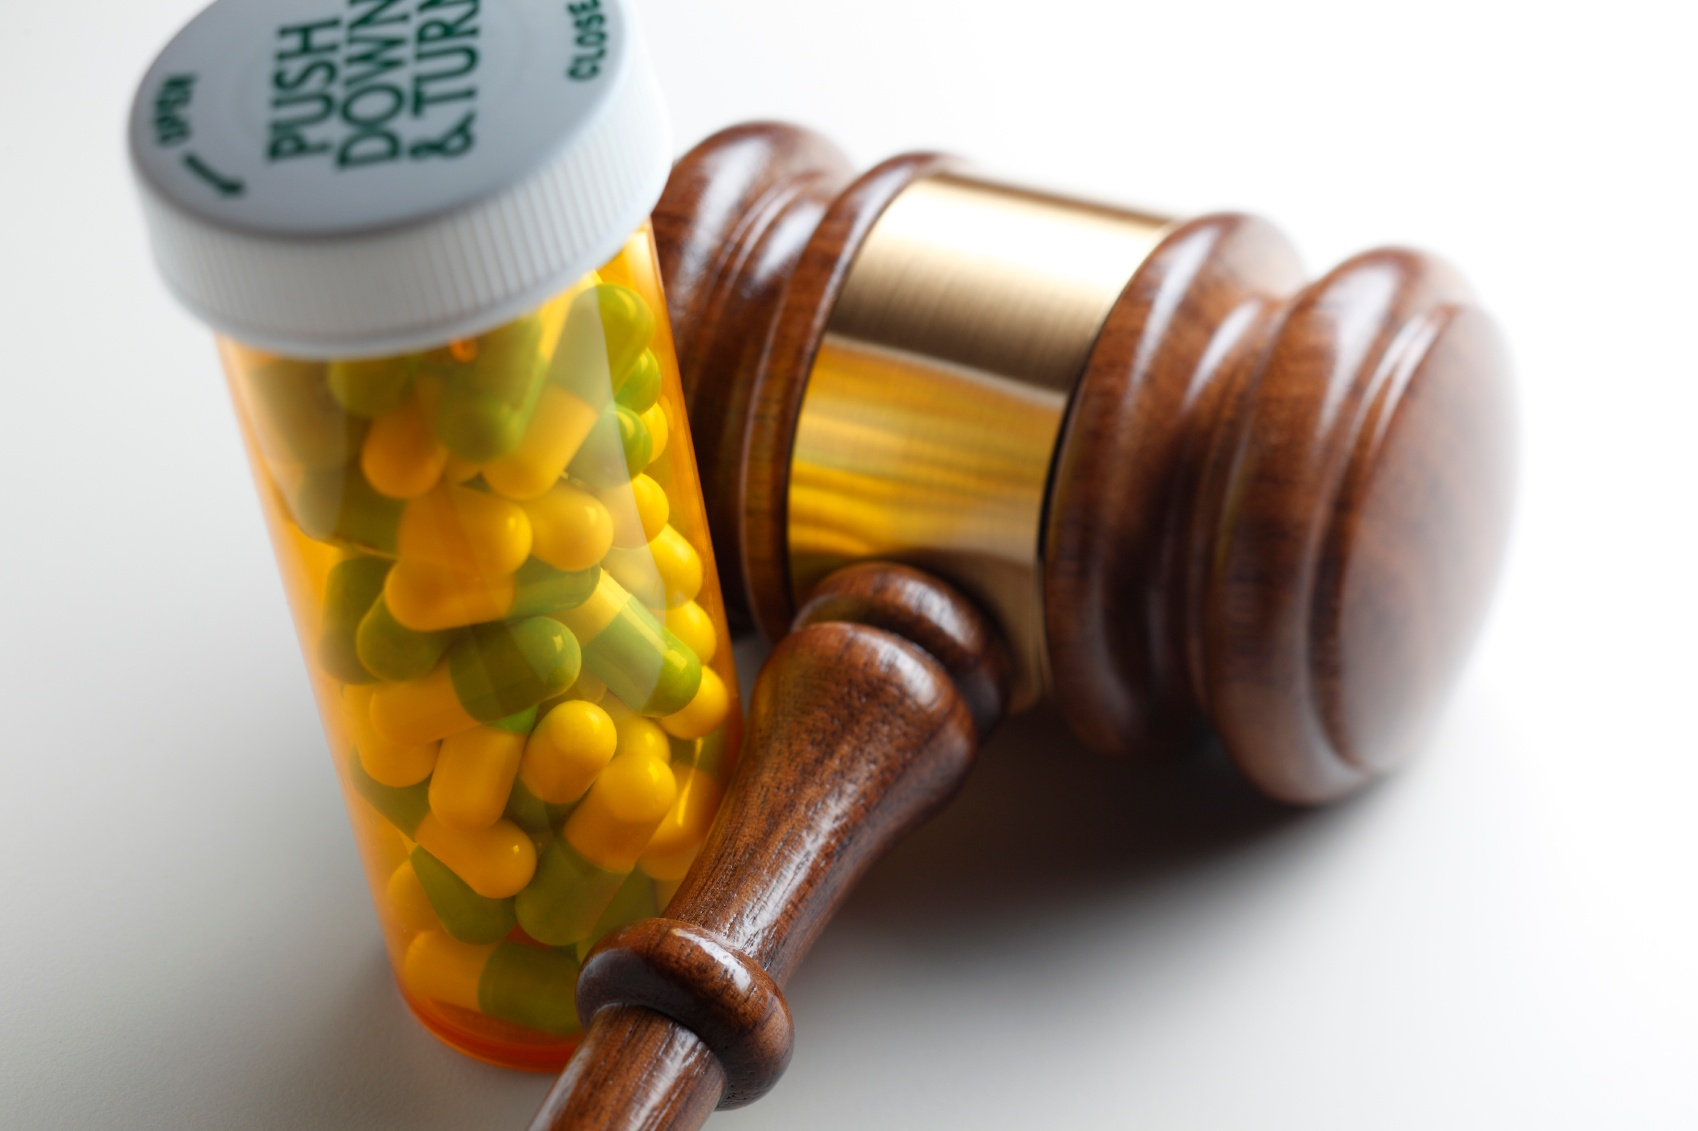 Pharmaceutical Companies Suppress Evidence and Promote Prescription Opioids